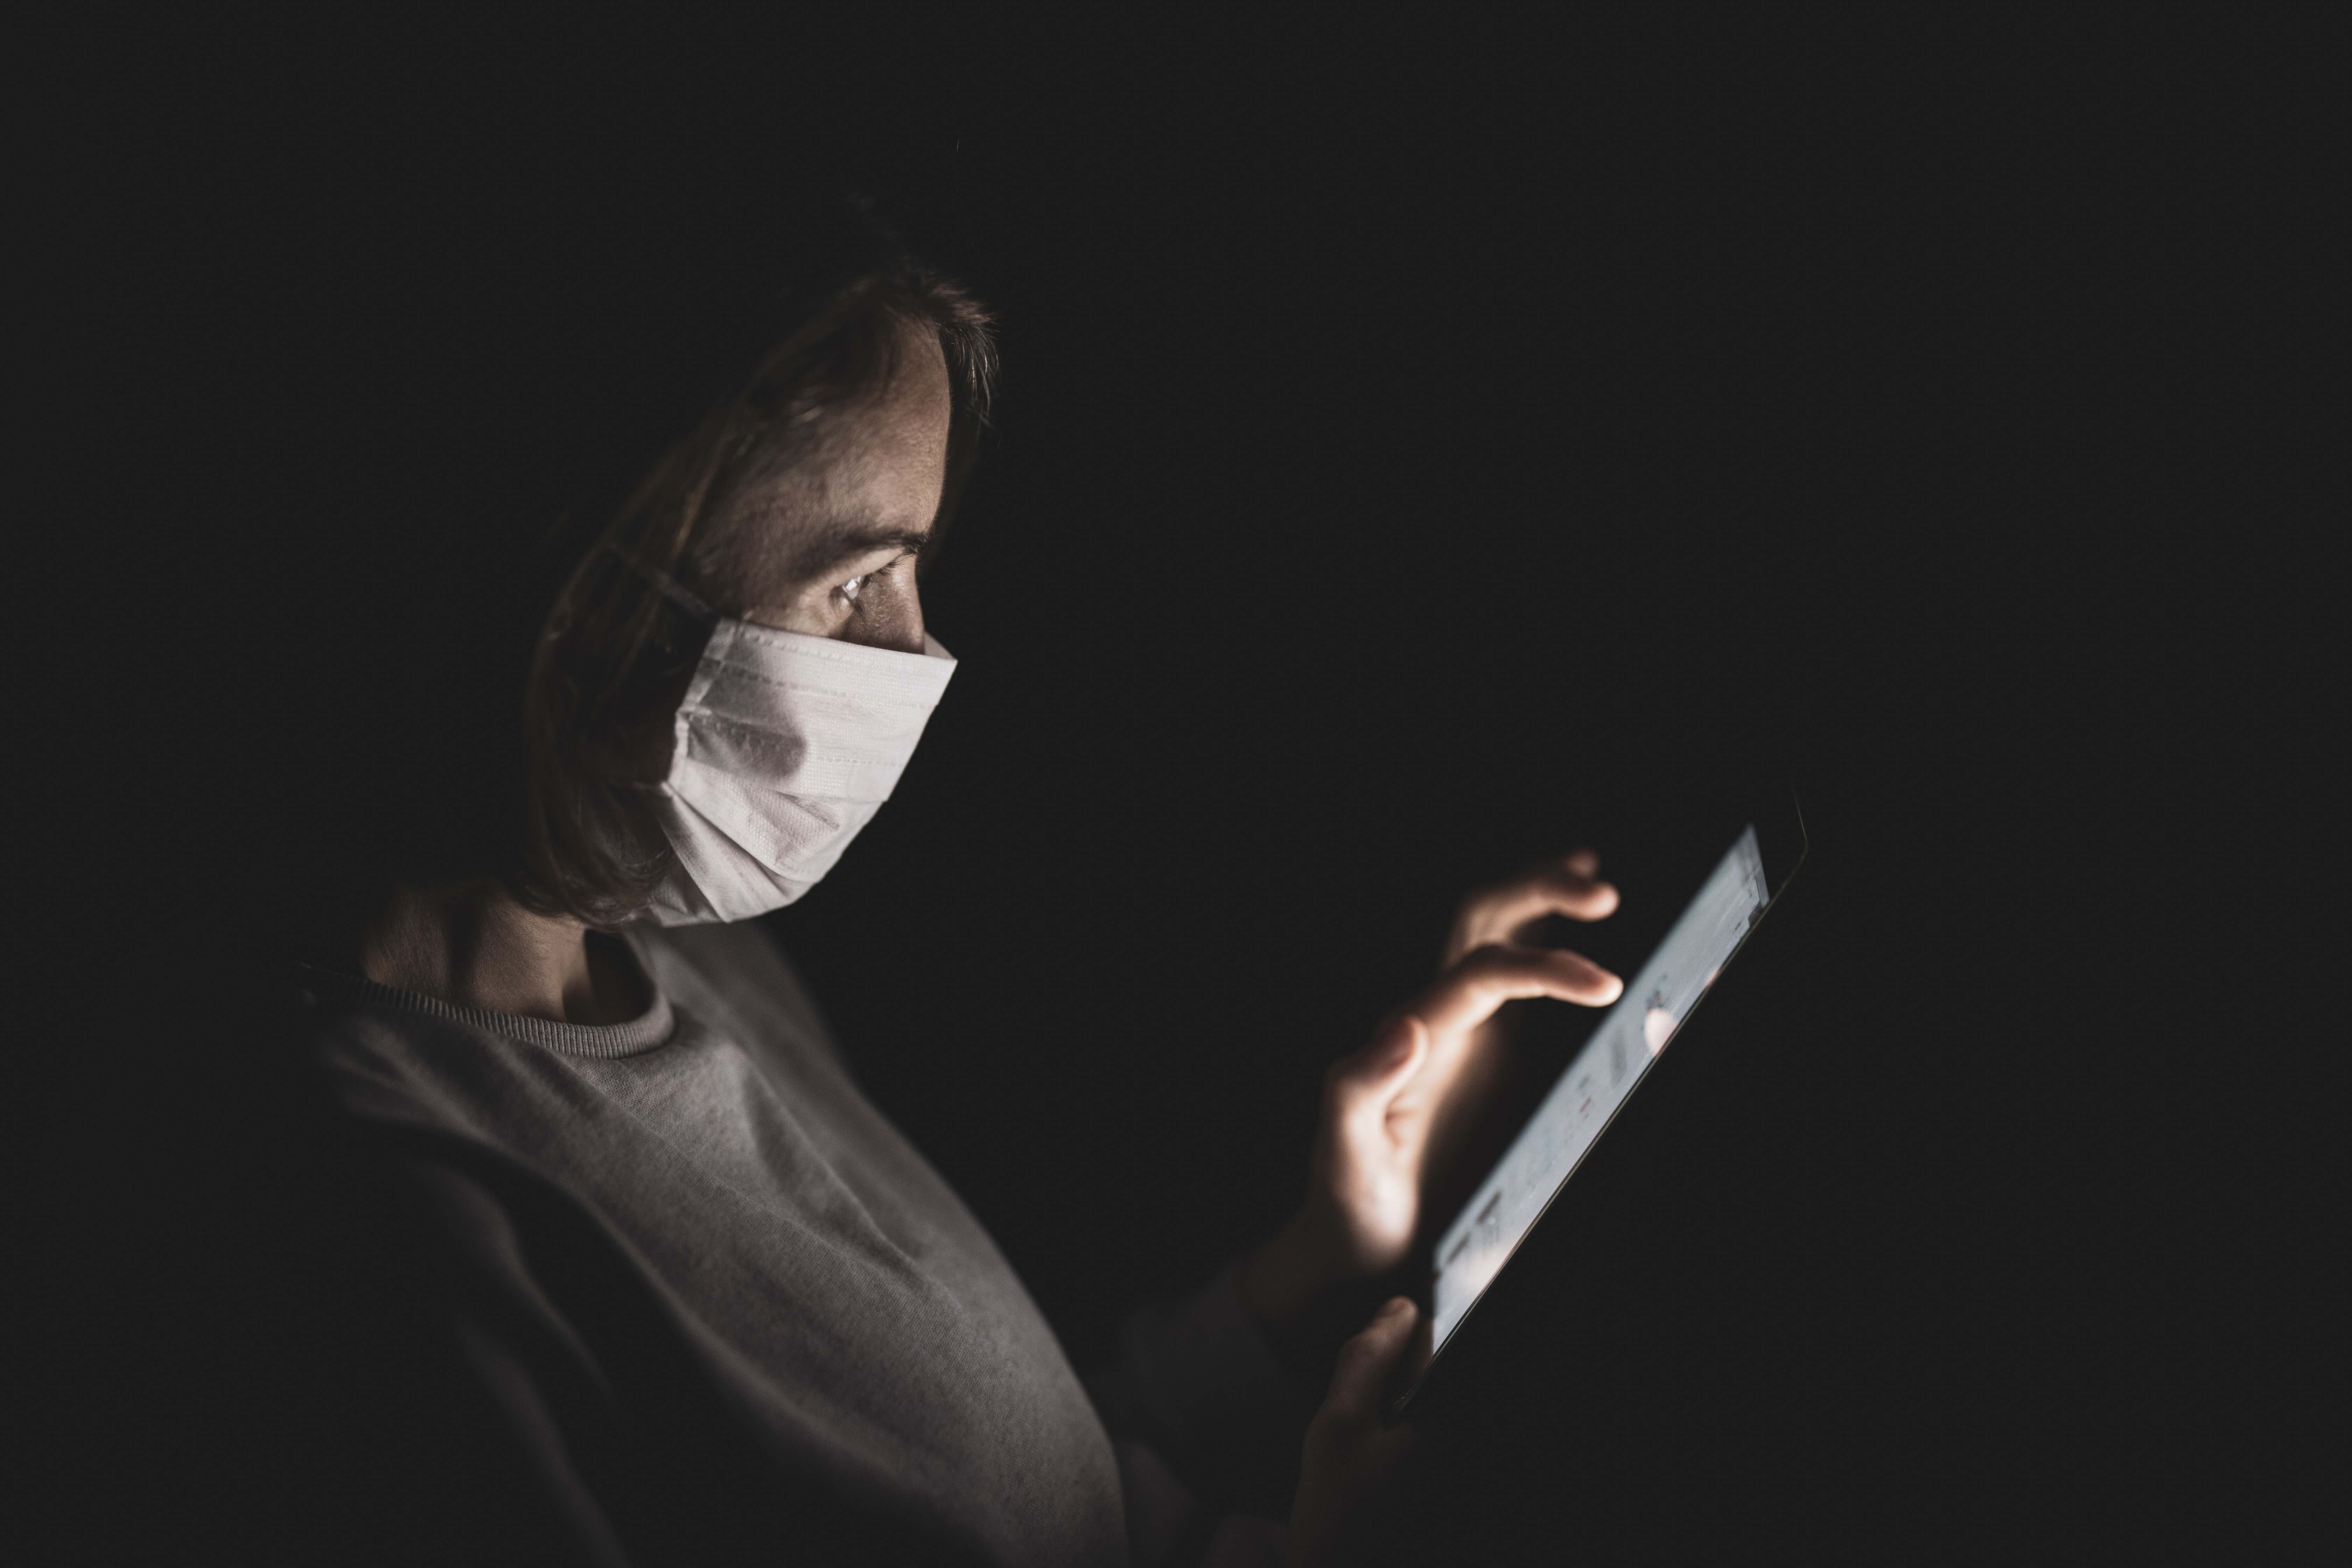 Woman wearing a face mask for protection from coronavirus. She is sitting in the dark, illuminated from the light of a tablet that she is working on.